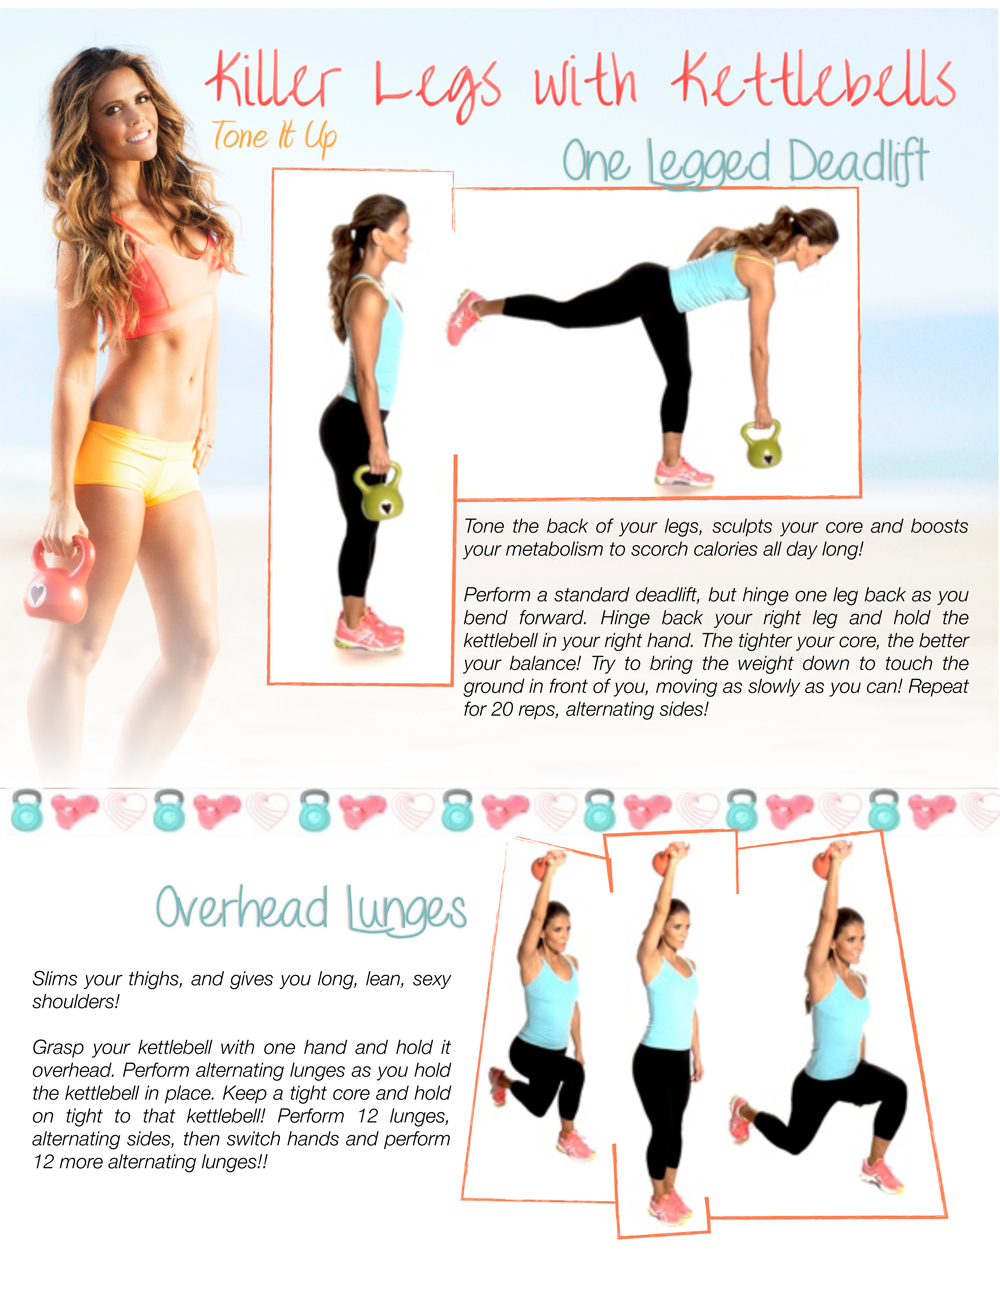 Kettlebell printable workout deadlift and lunges move